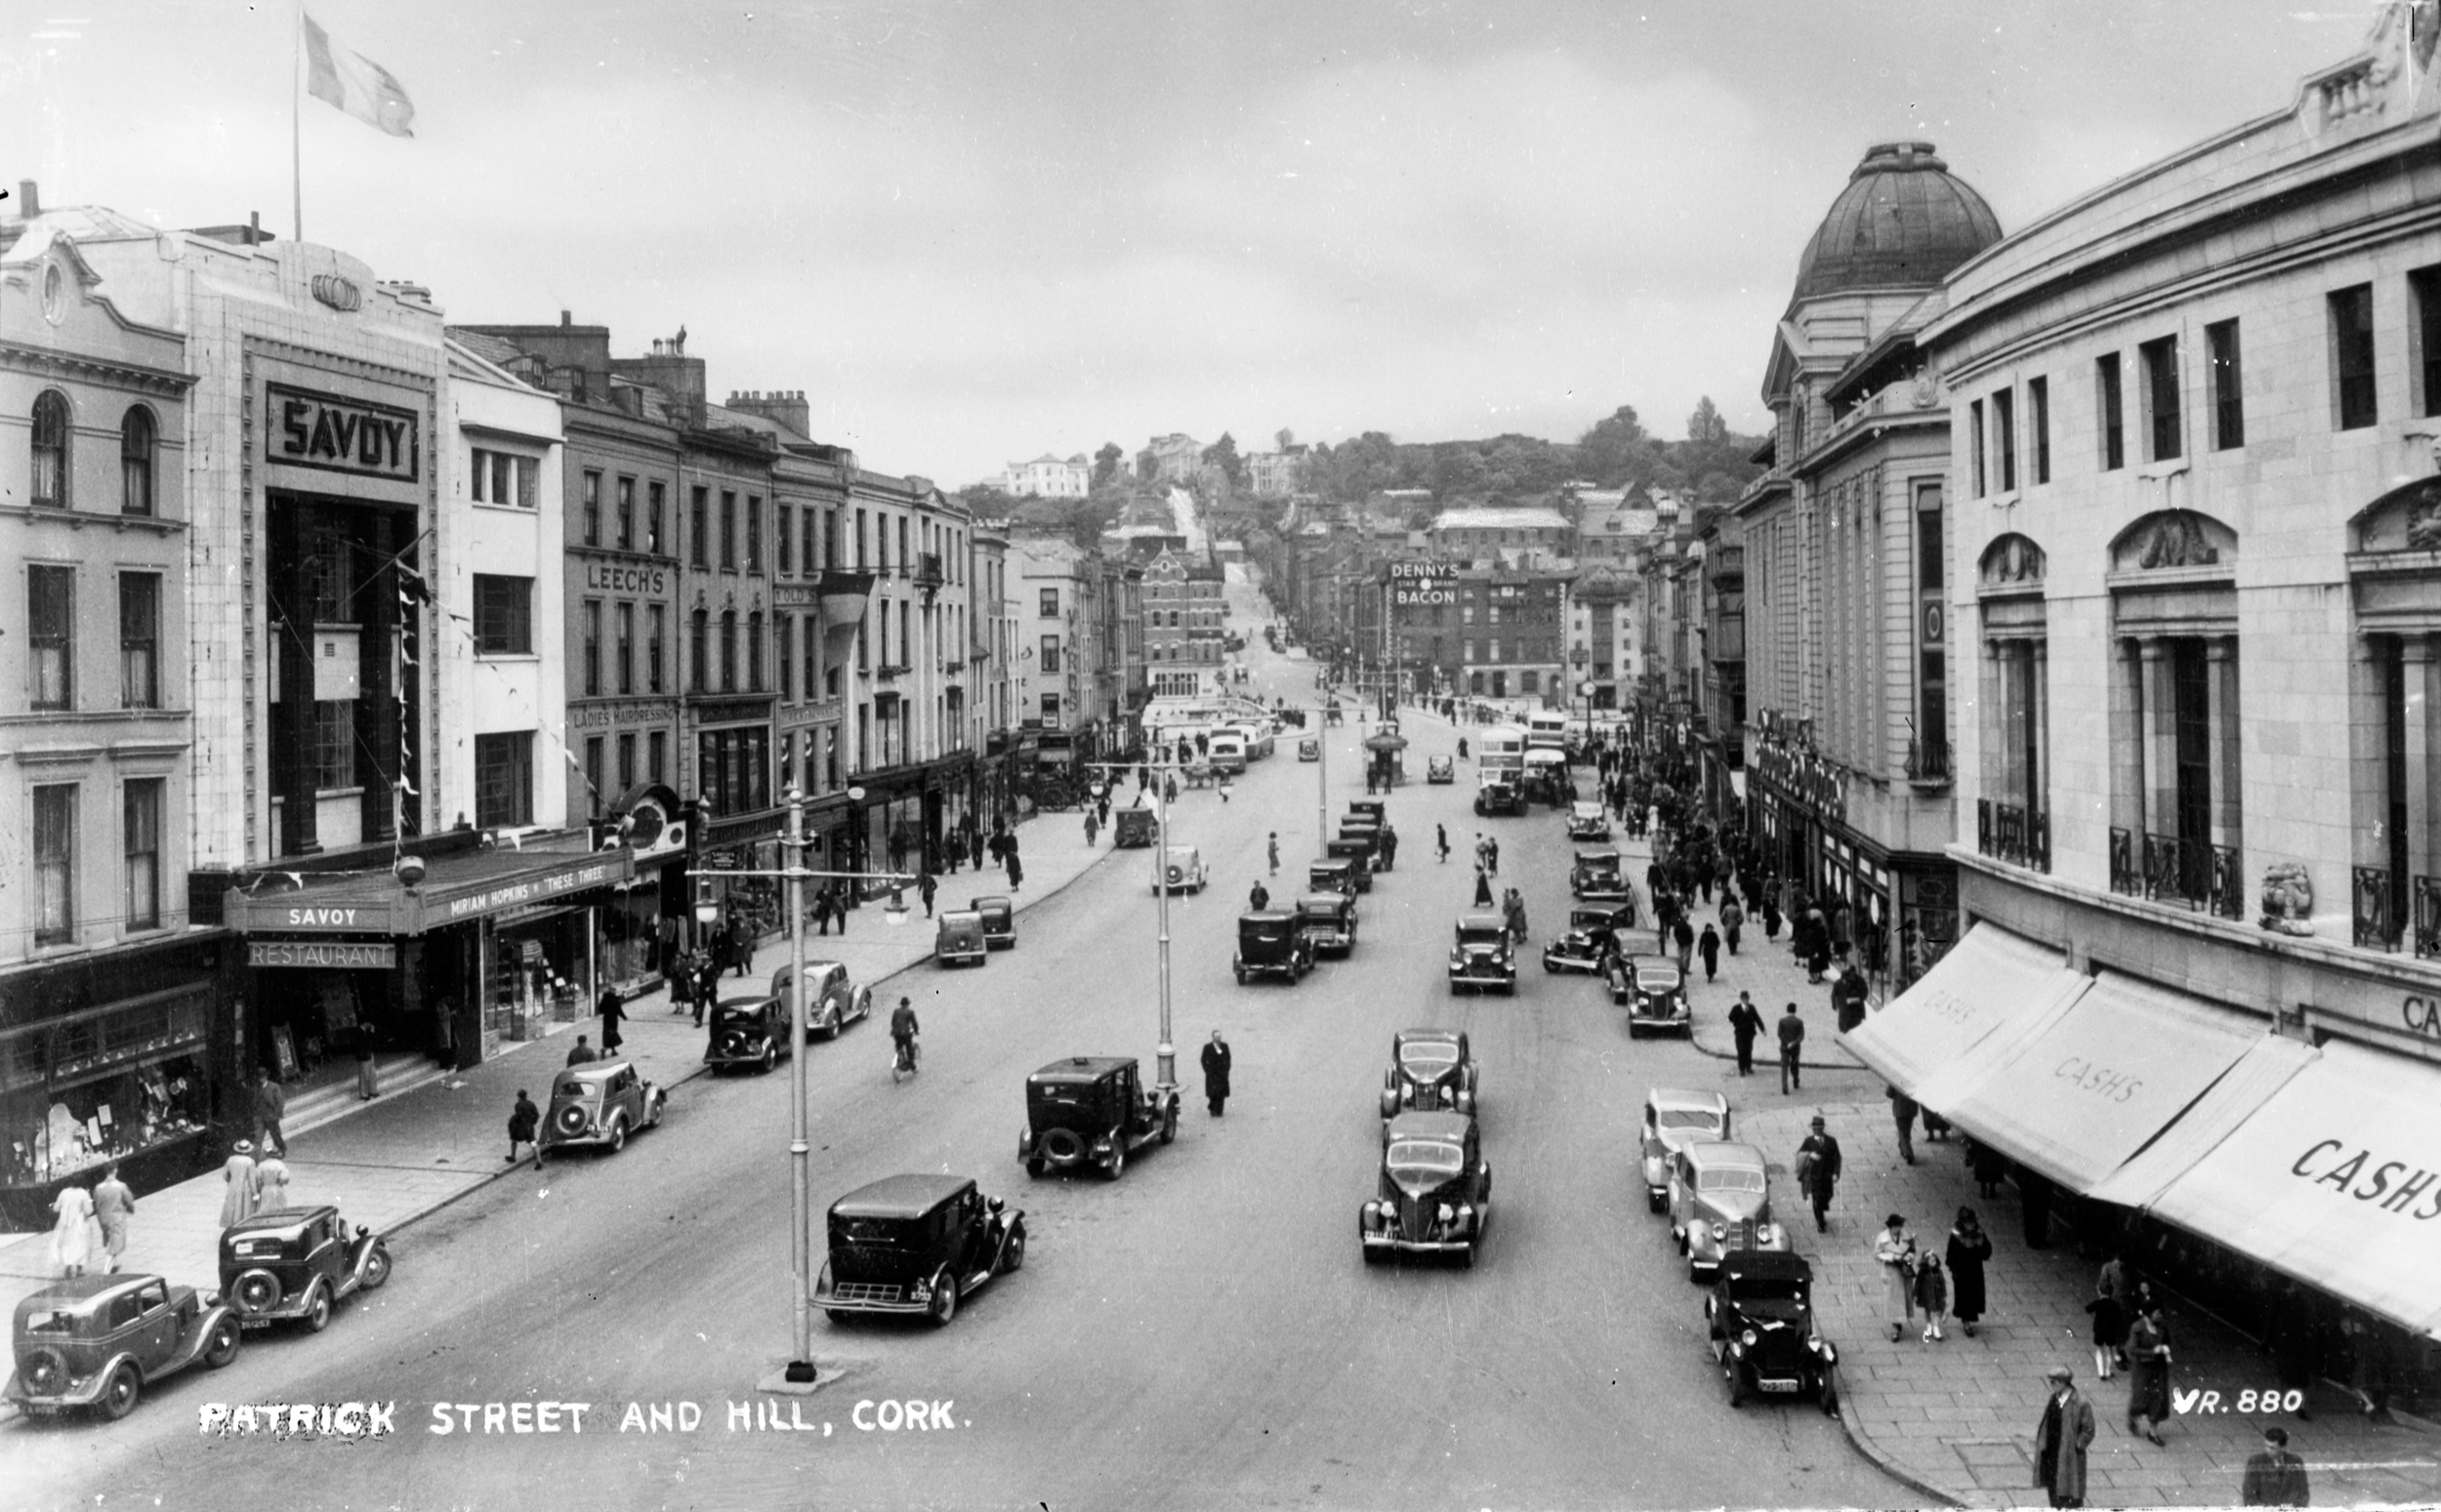 Old photo of Patrick Street, Co. Cork, Ireland